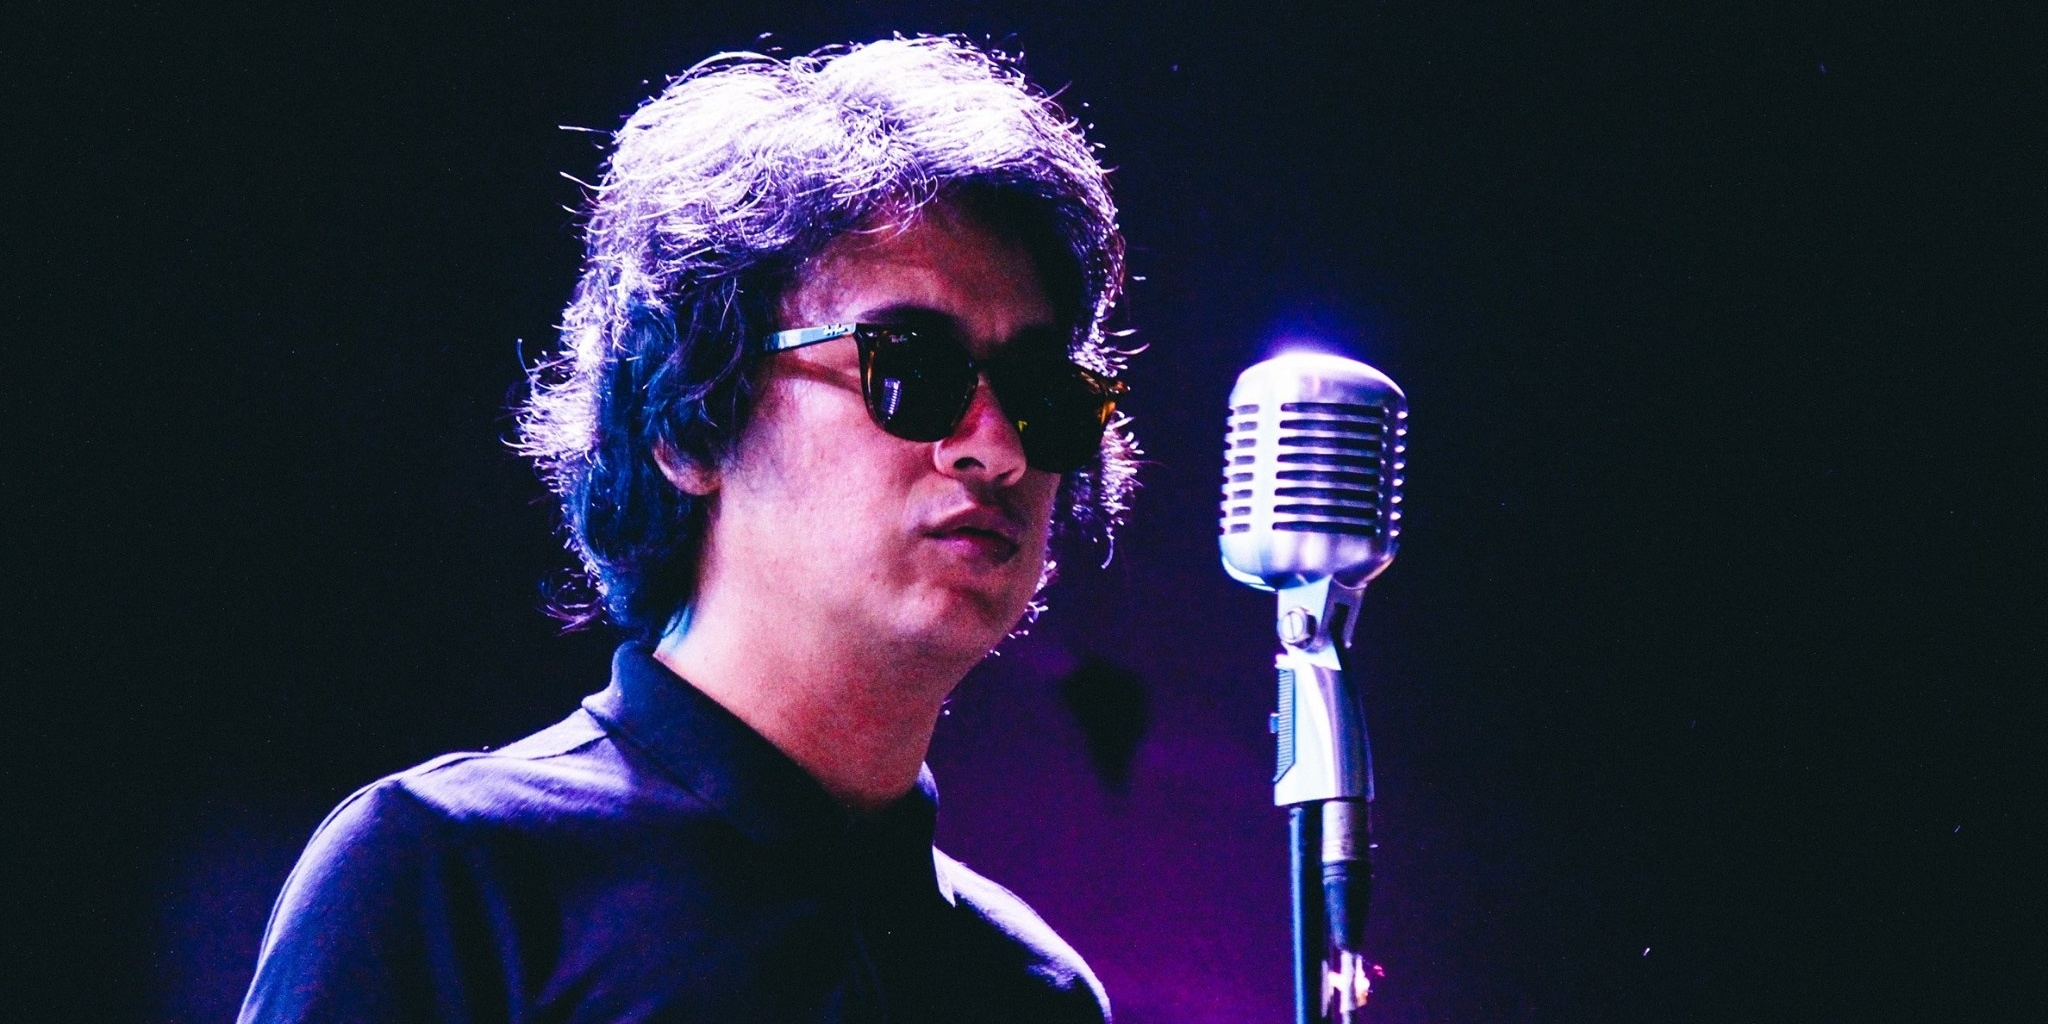 Ely Buendia tweets proof of life to dismiss death hoax